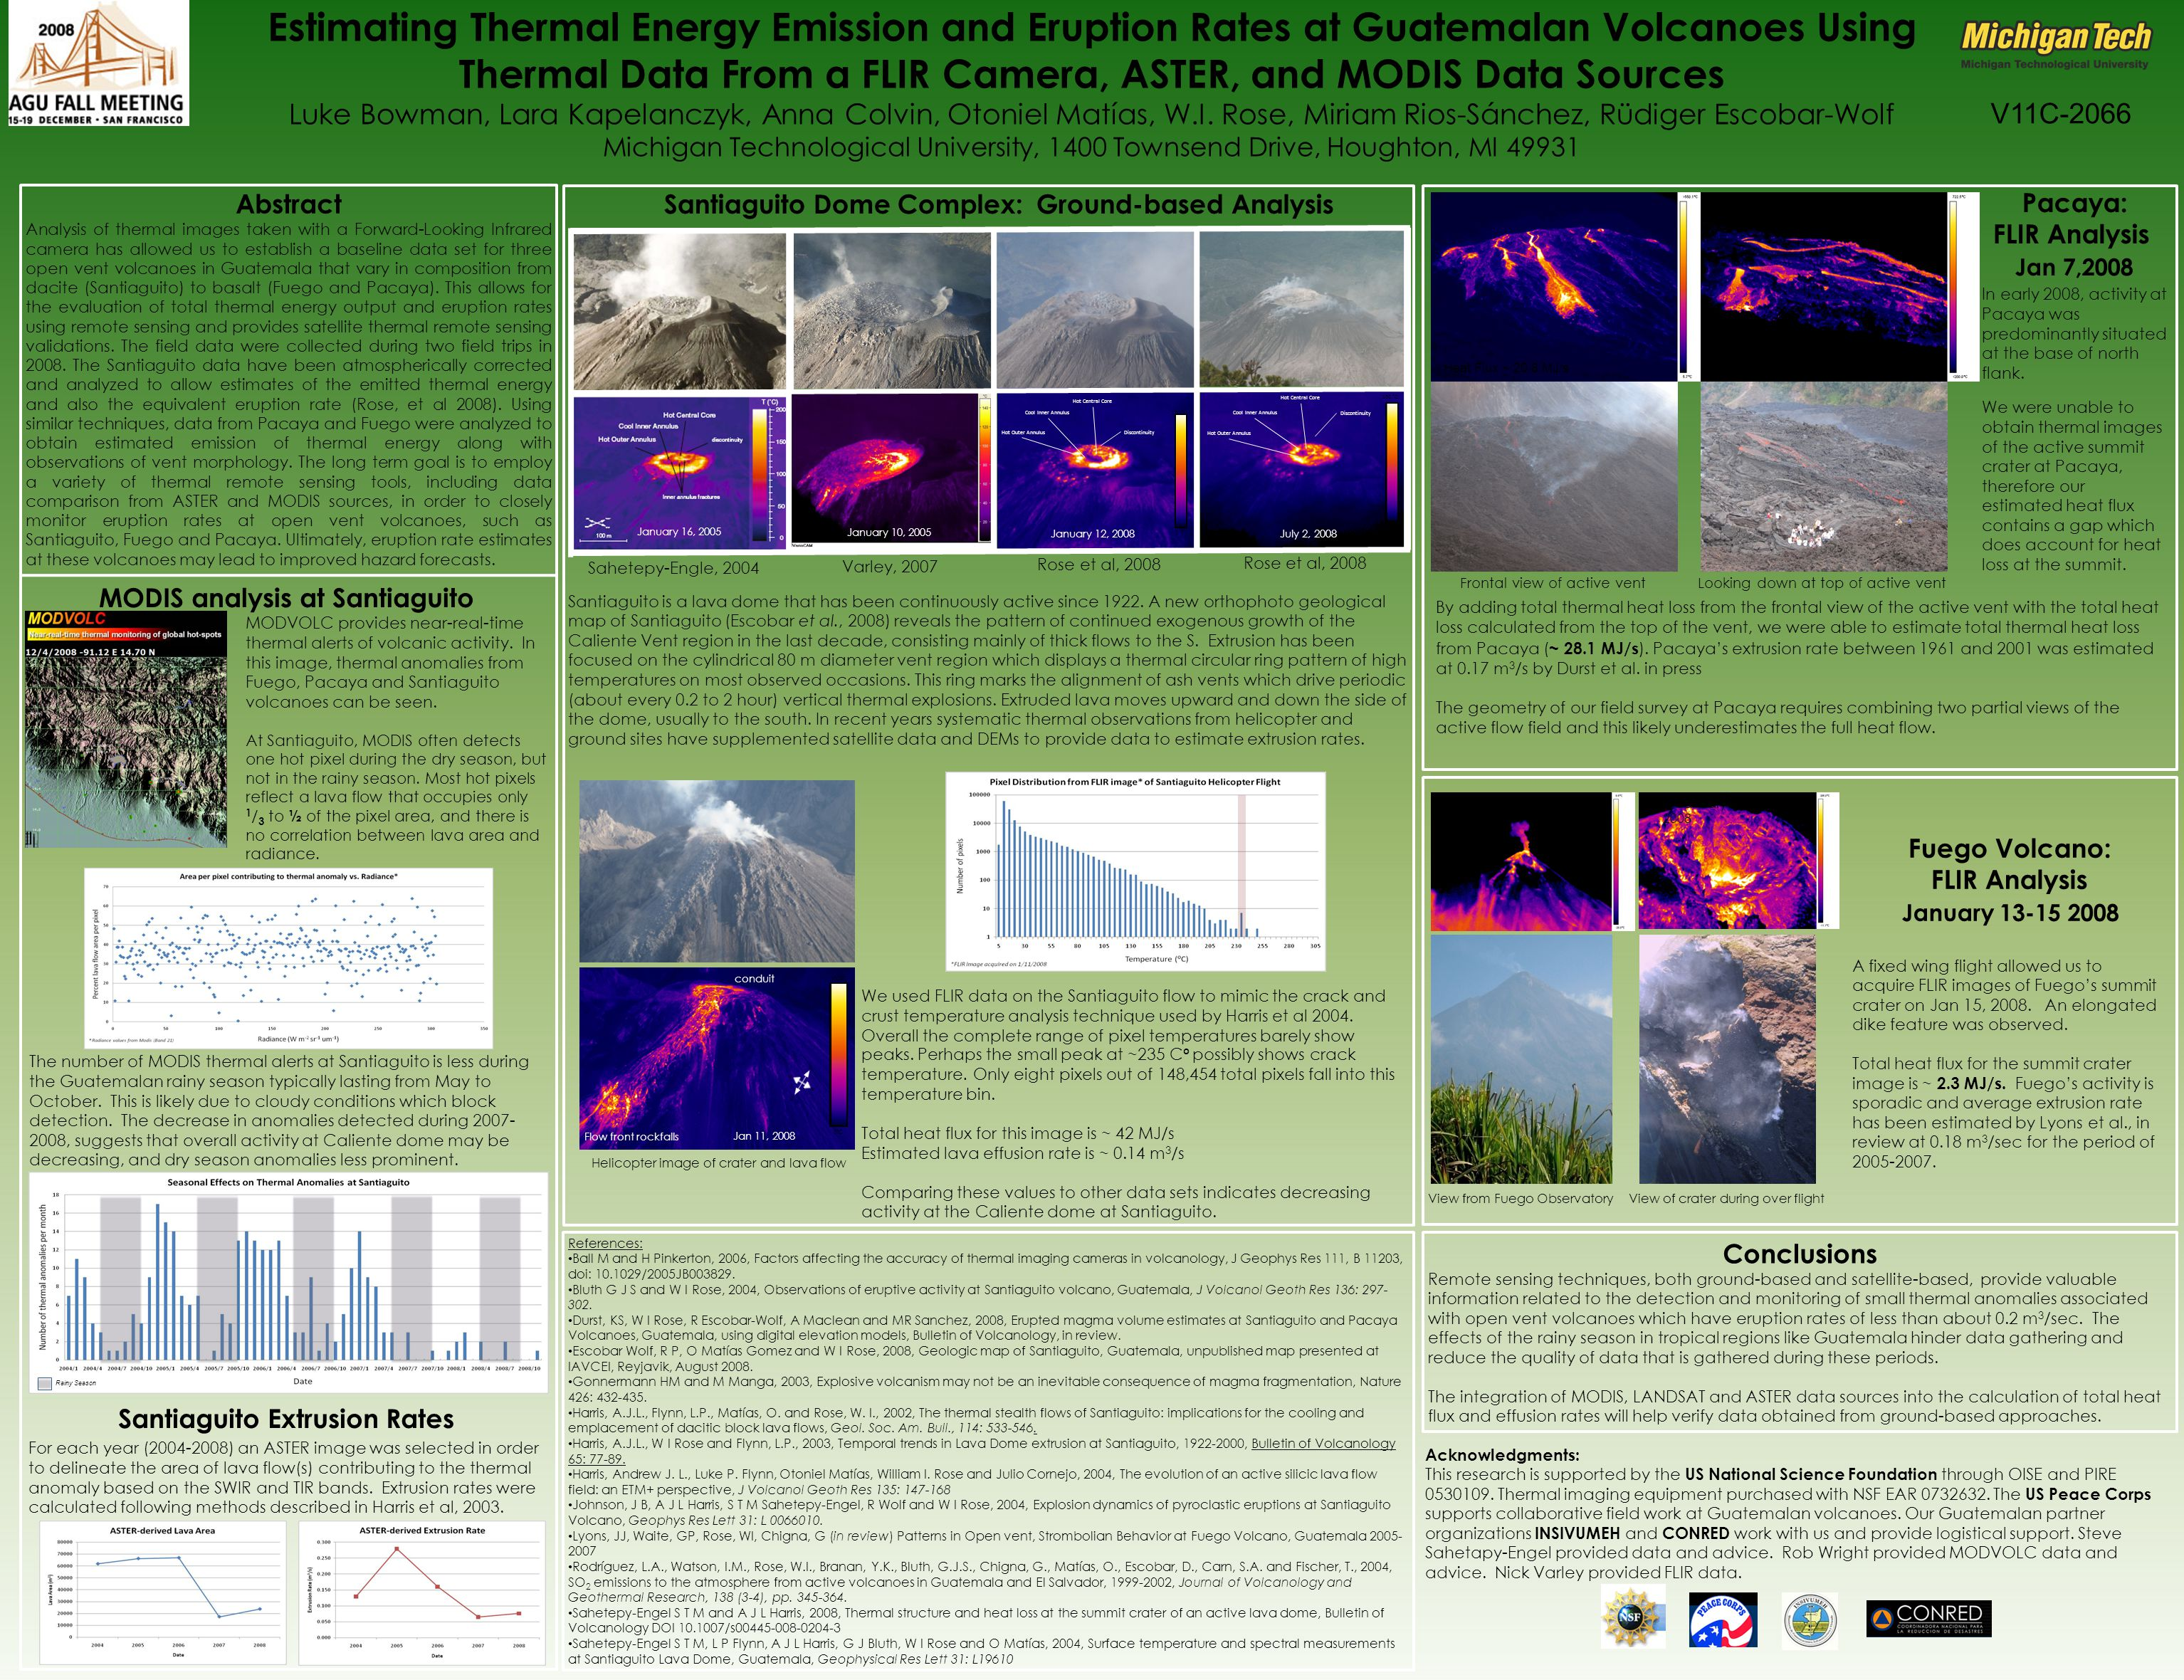 Abstract Analysis of thermal images taken with a Forward-Looking Infrared camera has allowed us to establish a baseline data set for three open vent volcanoes in Guatemala that vary in composition from dacite (Santiaguito) to basalt (Fuego and Pacaya).